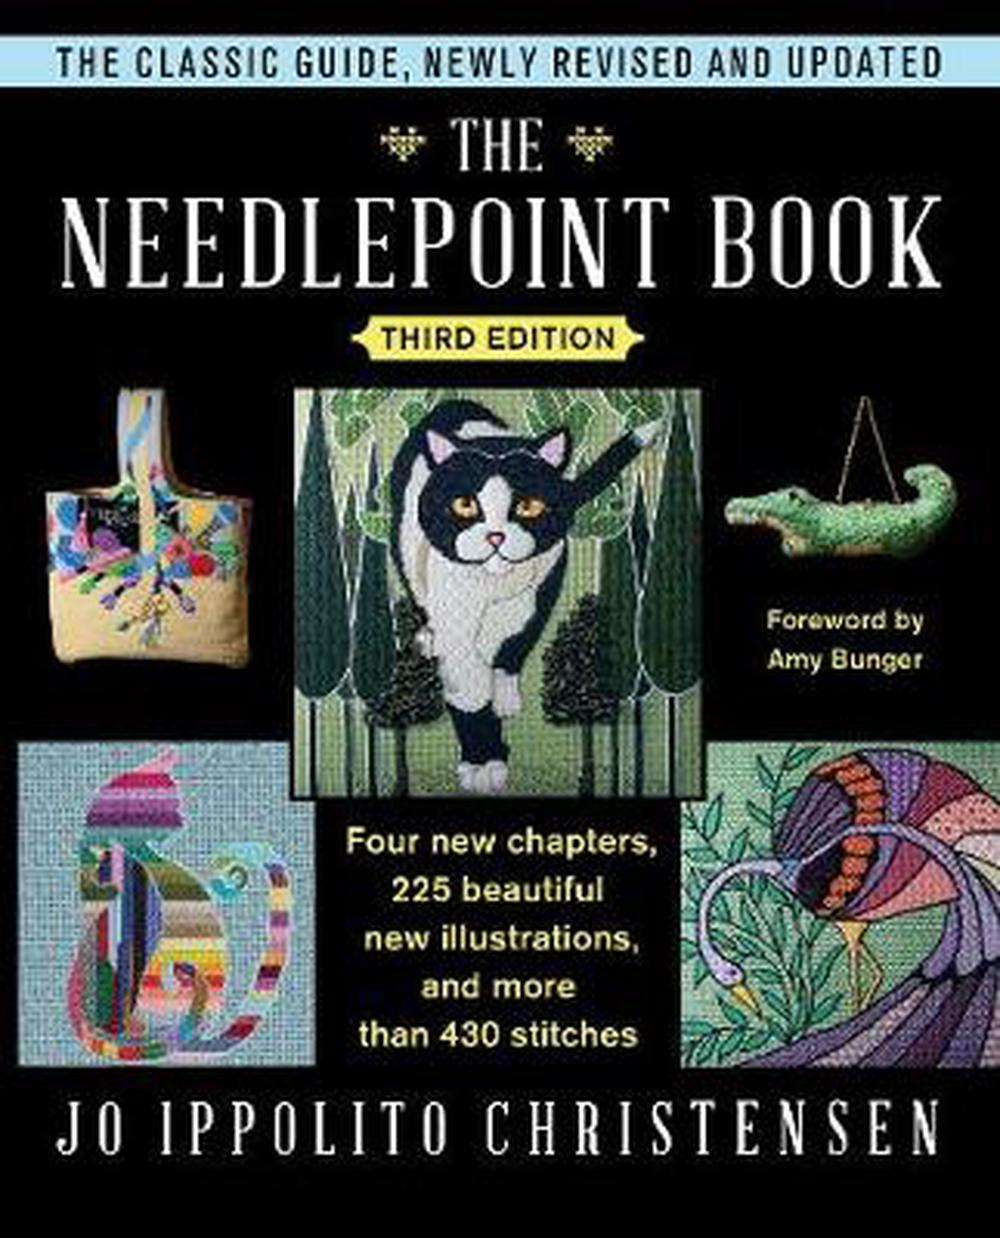 Needlepoint Book: New, Revised, and Updated Third Edition